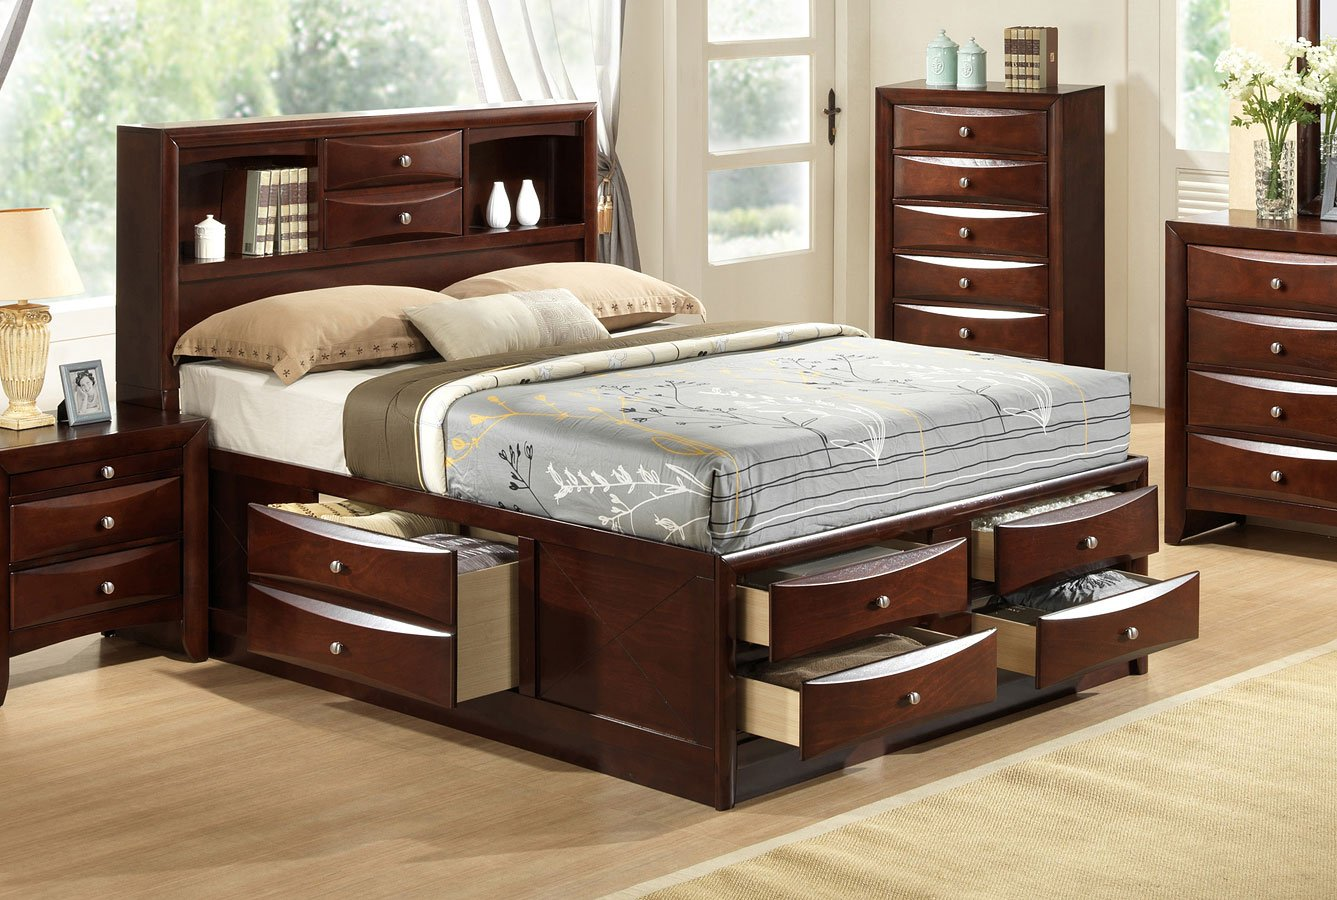 Emily bookcase bed brown bedroom furniture bedroom for Furniture markup